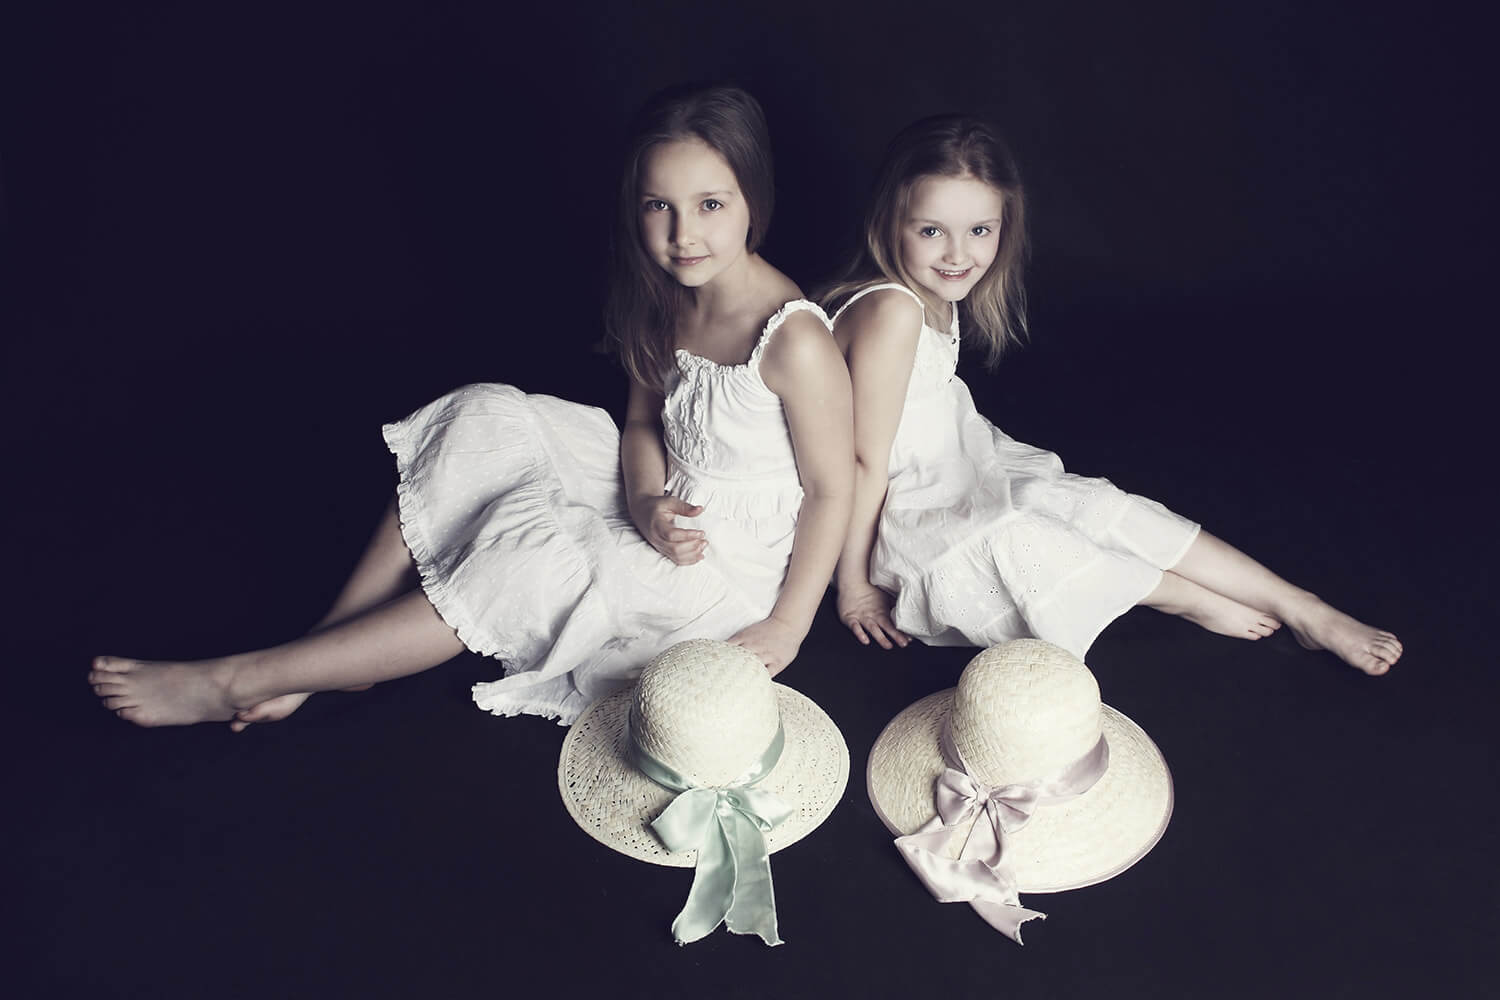 family photo of two sisters sitting in white dresses and with hats on a dark background